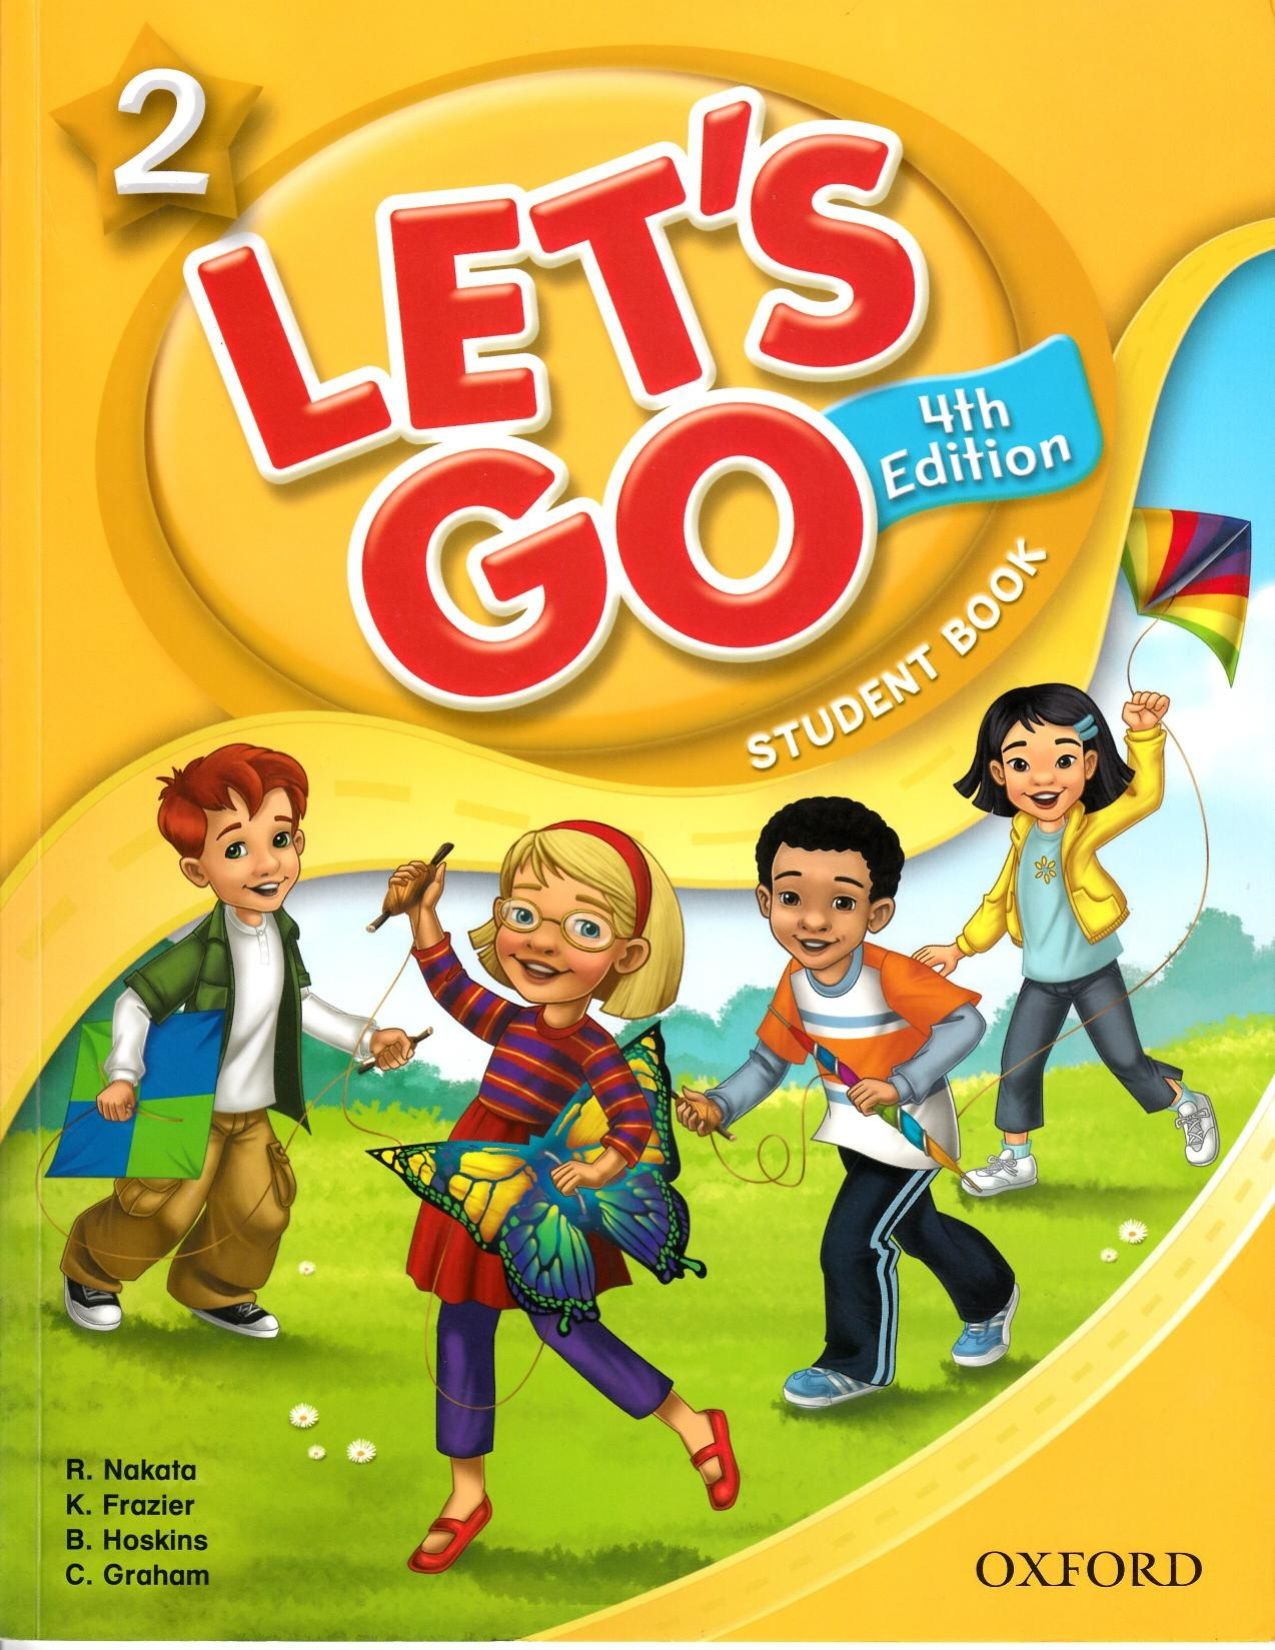 Let S Go 2 Student Book 4th Edition English Books For Kids Letting Go Book English Book